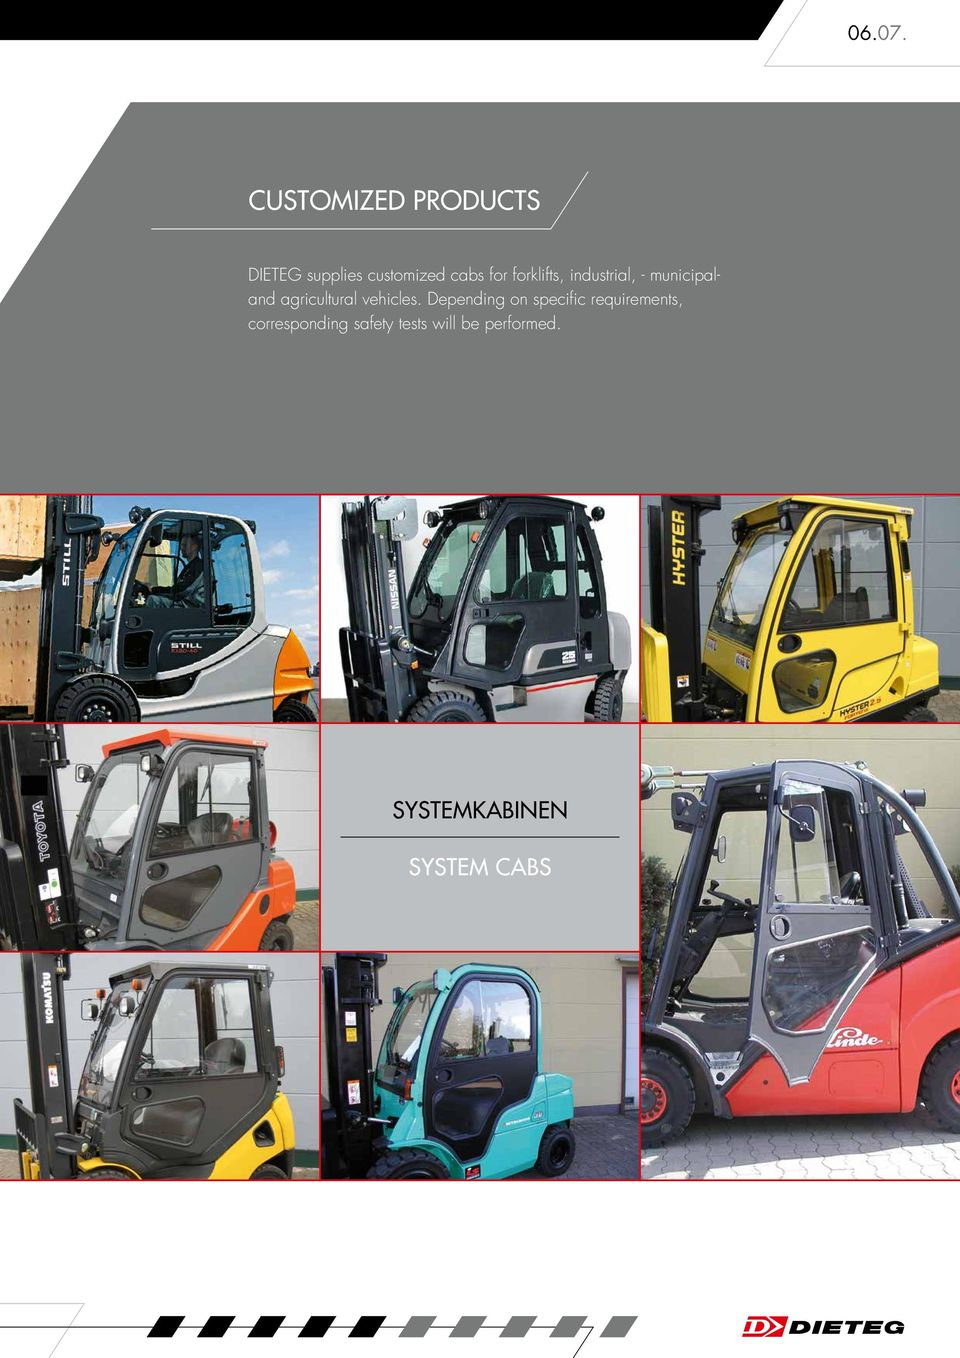 forklifts, industrial, - municipaland agricultural